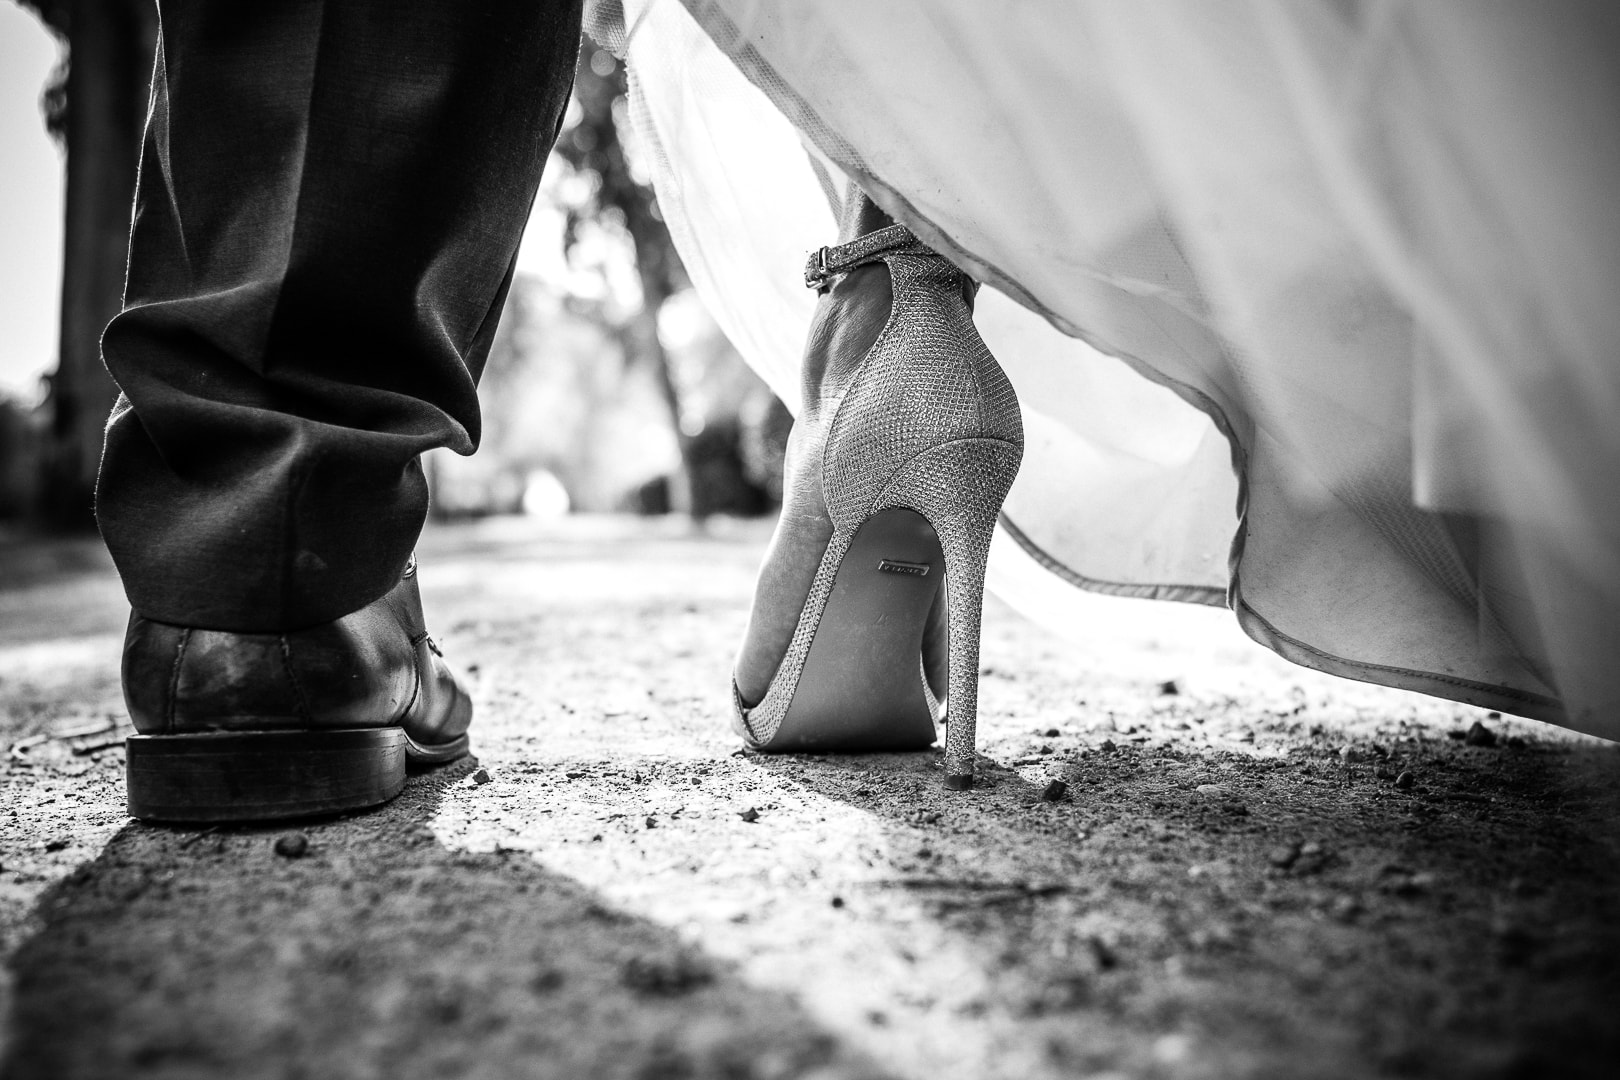 trezors-photography-photographe-professionnel-toulouse-31-mariage-reportage-photo-lifestyle (6)